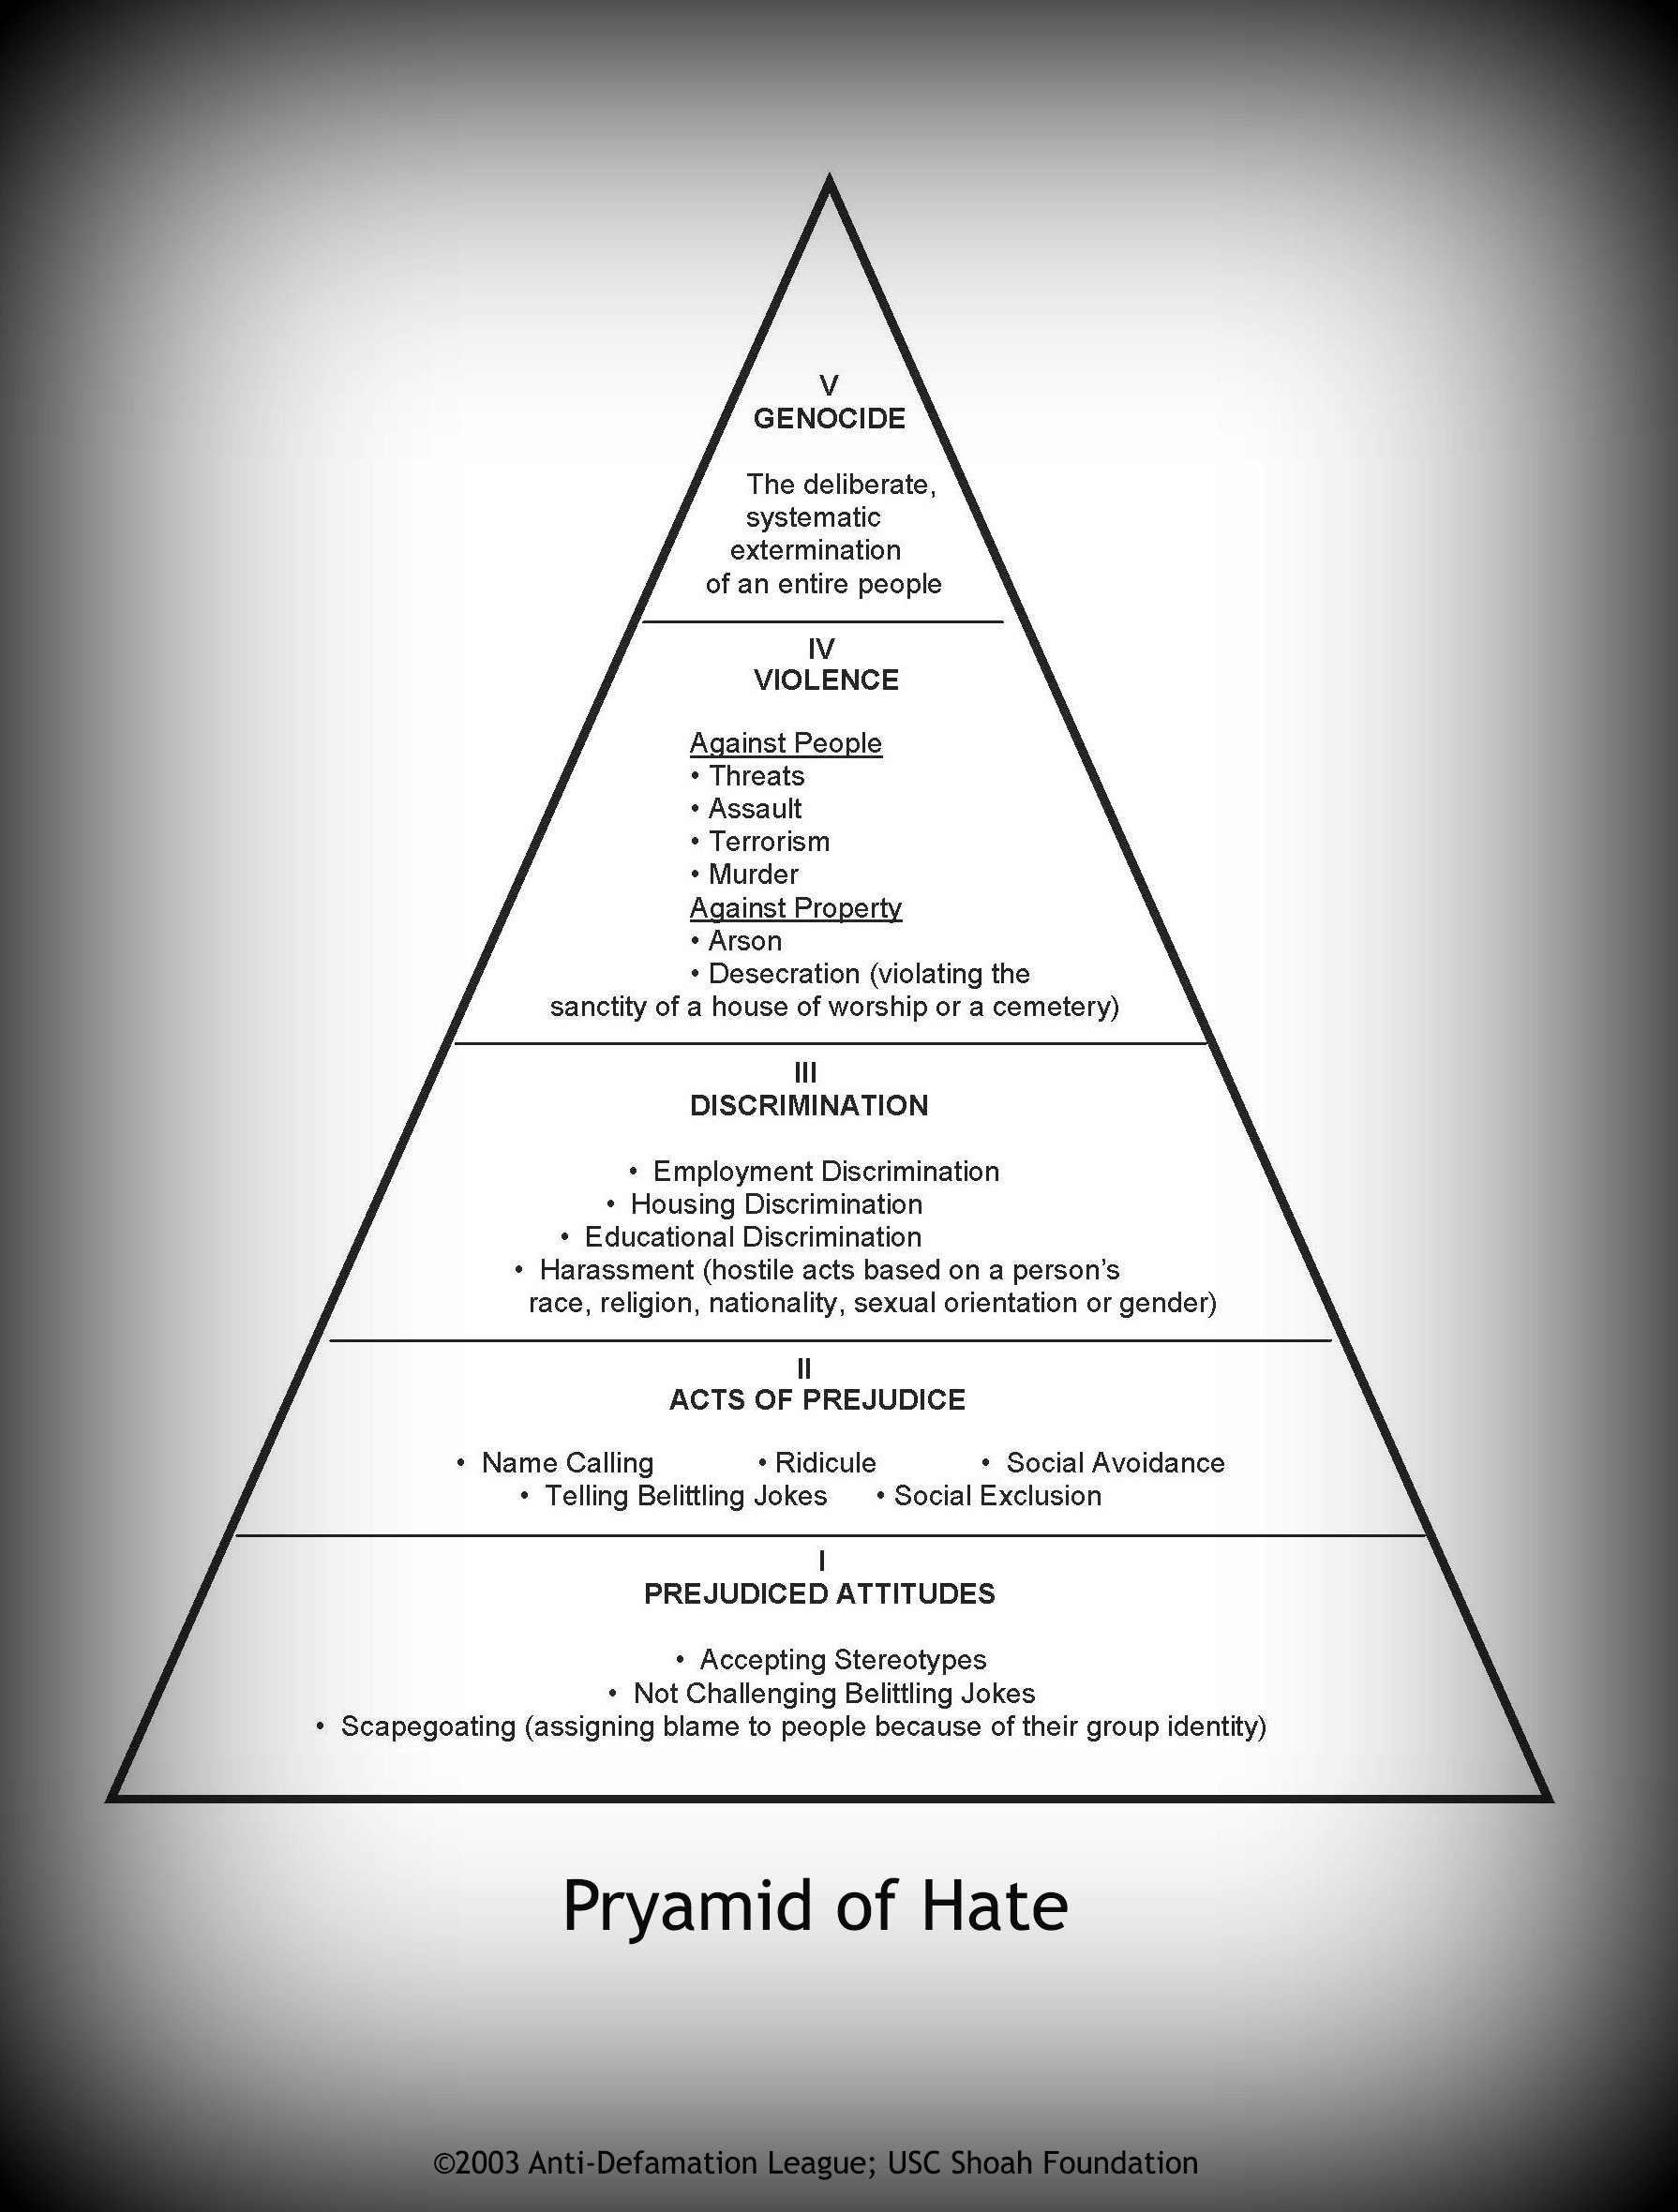 Pyramid of Hate | USC Shoah Foundation